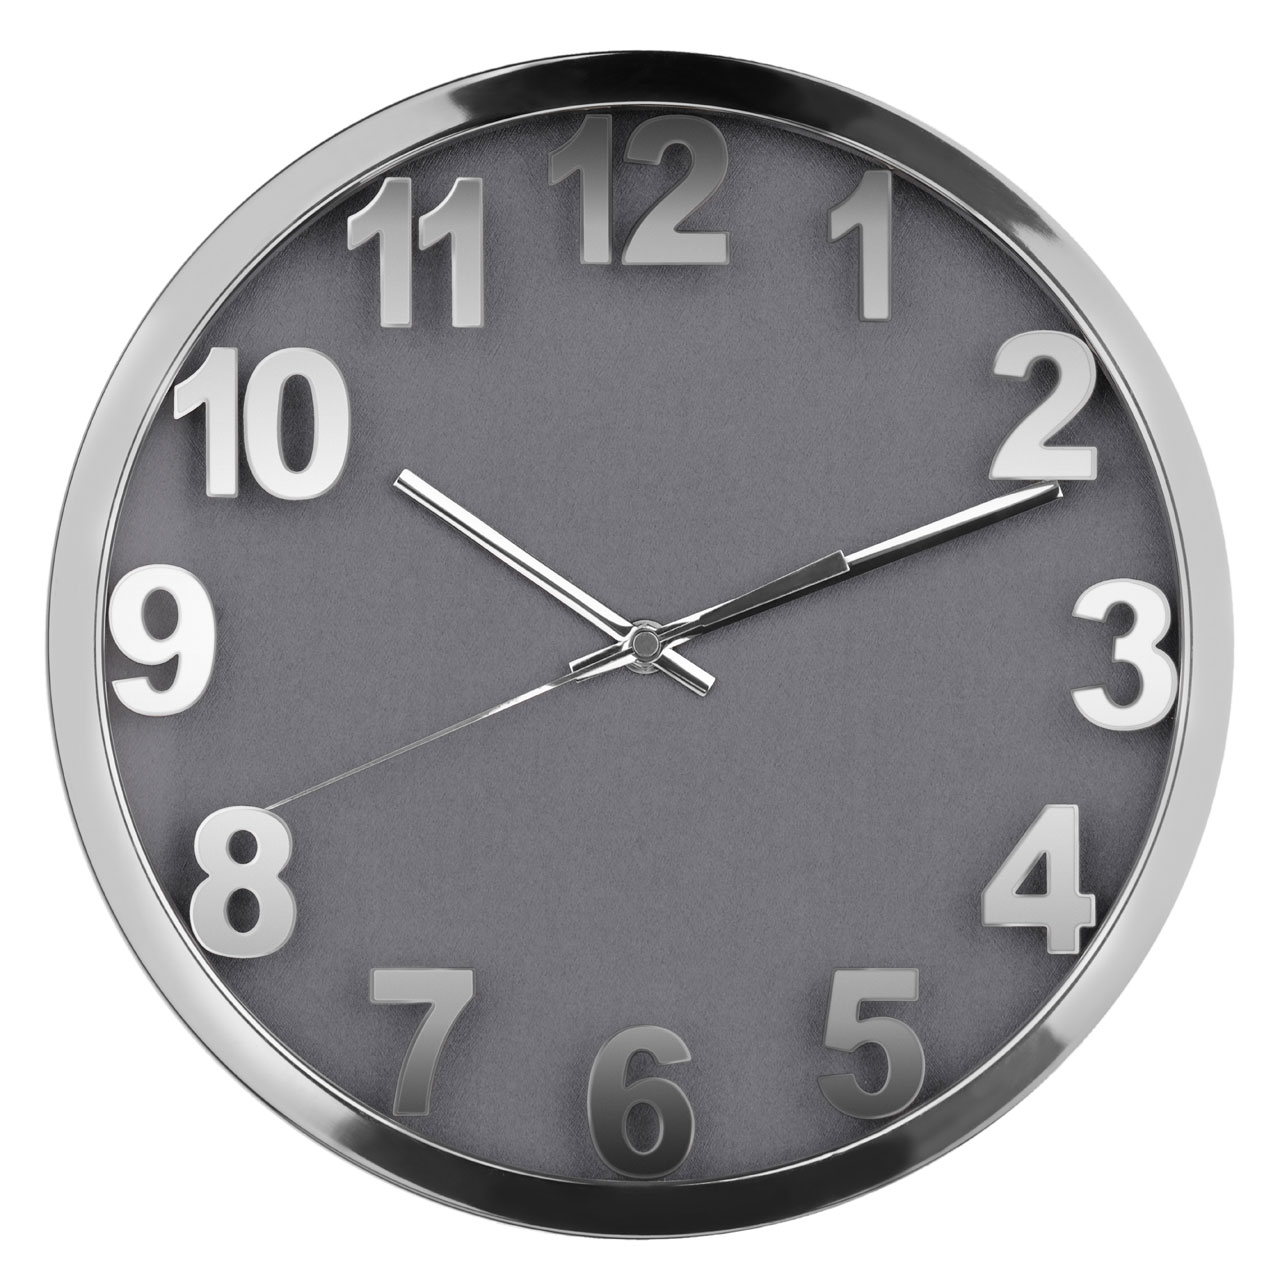 Wall Clock Stainless Steel With A Silver Face Stainless